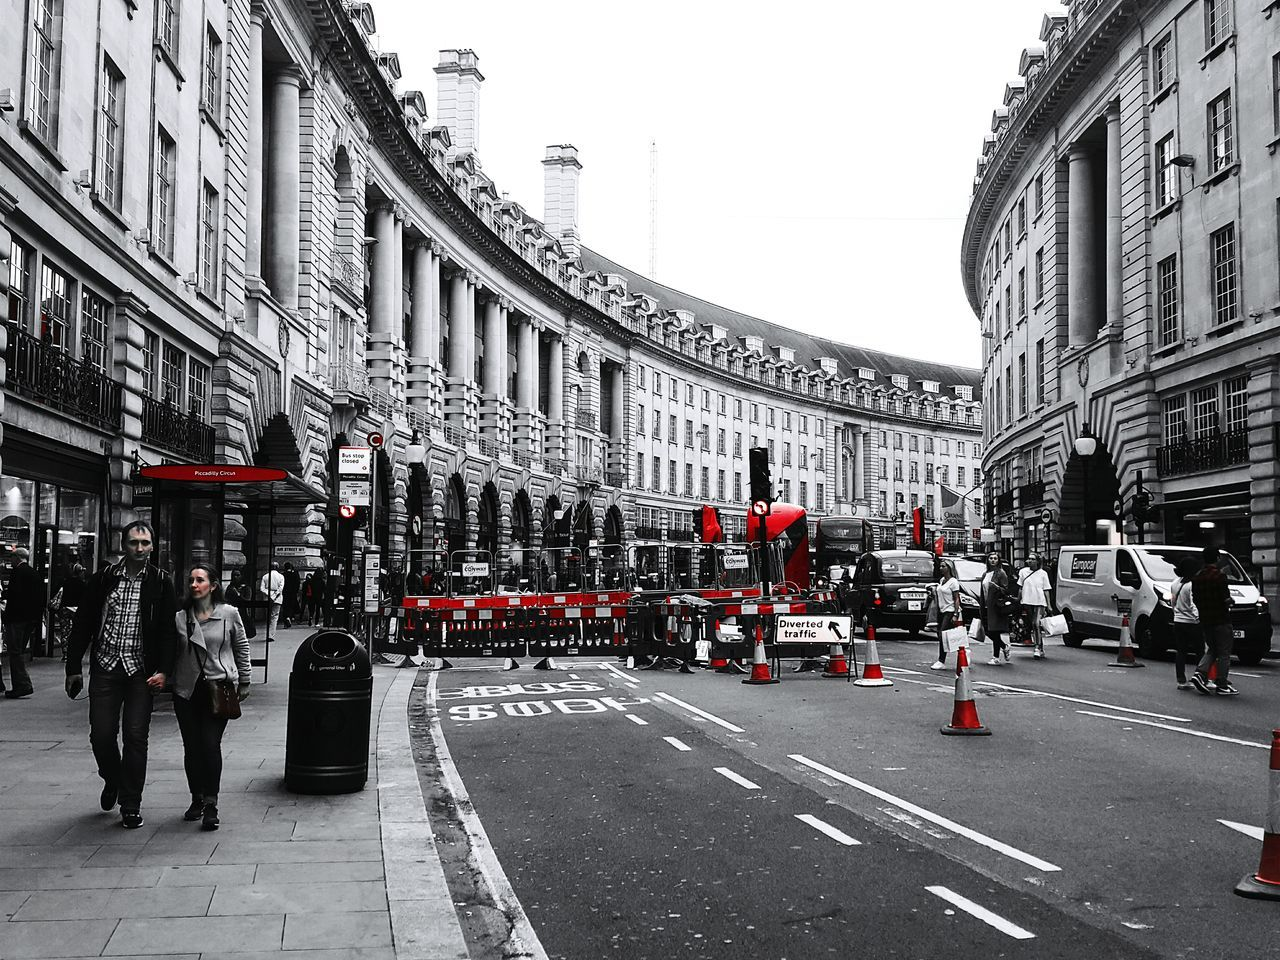 London Regentstreet Blavk And White Pbotography Check This Out EyeEm Collection Hello World Blessedsunday Walking Around